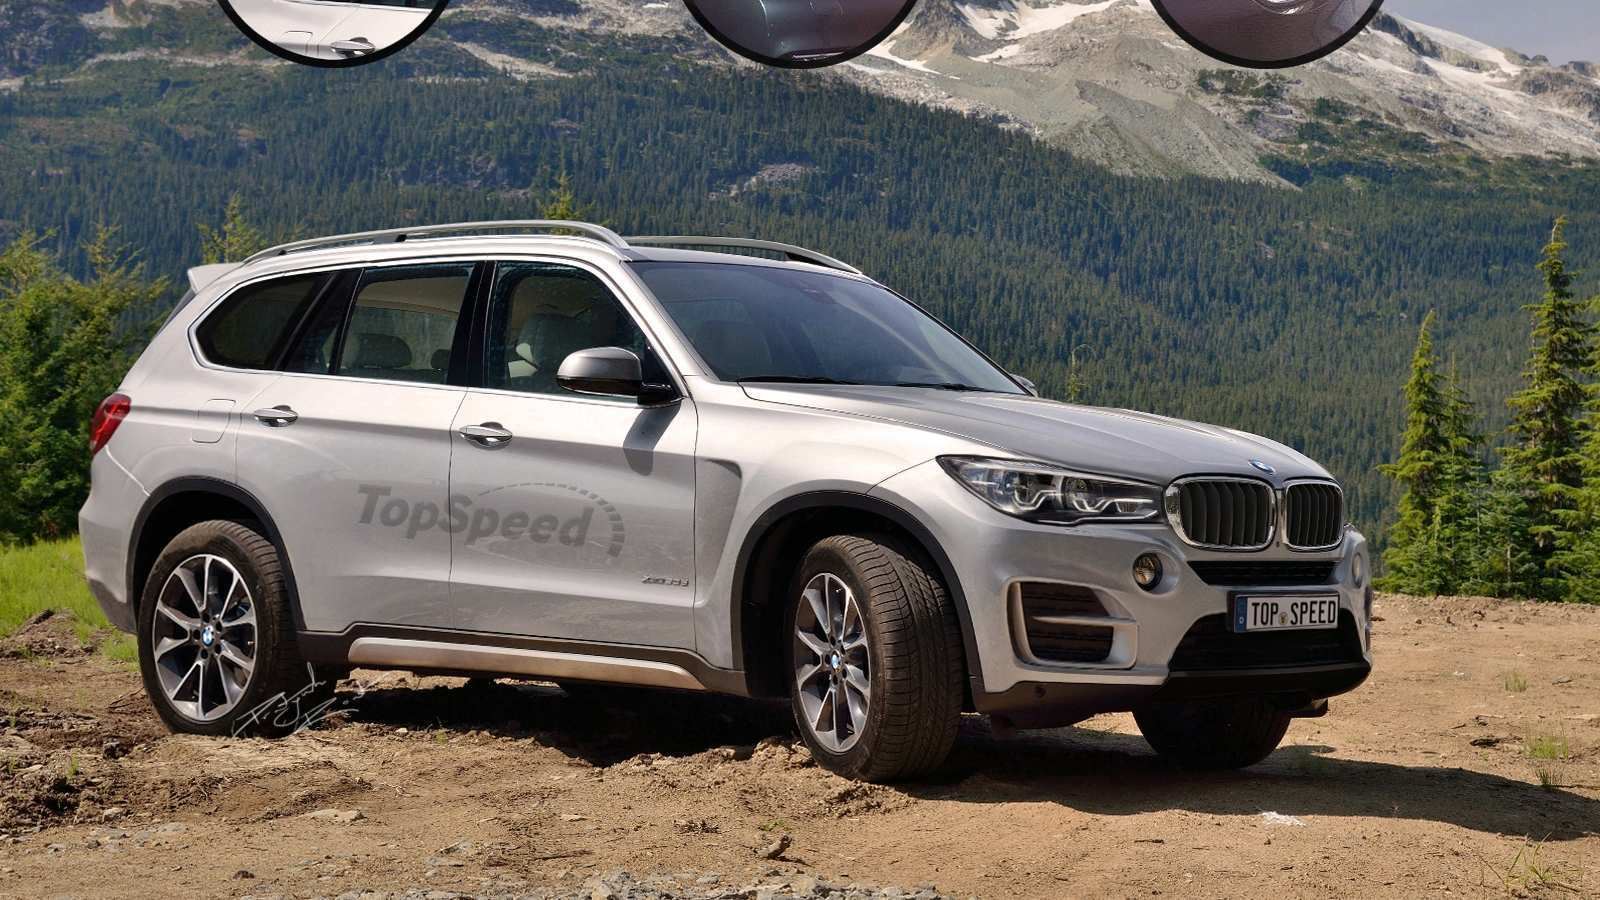 56 Great 2020 BMW X7 Price with 2020 BMW X7